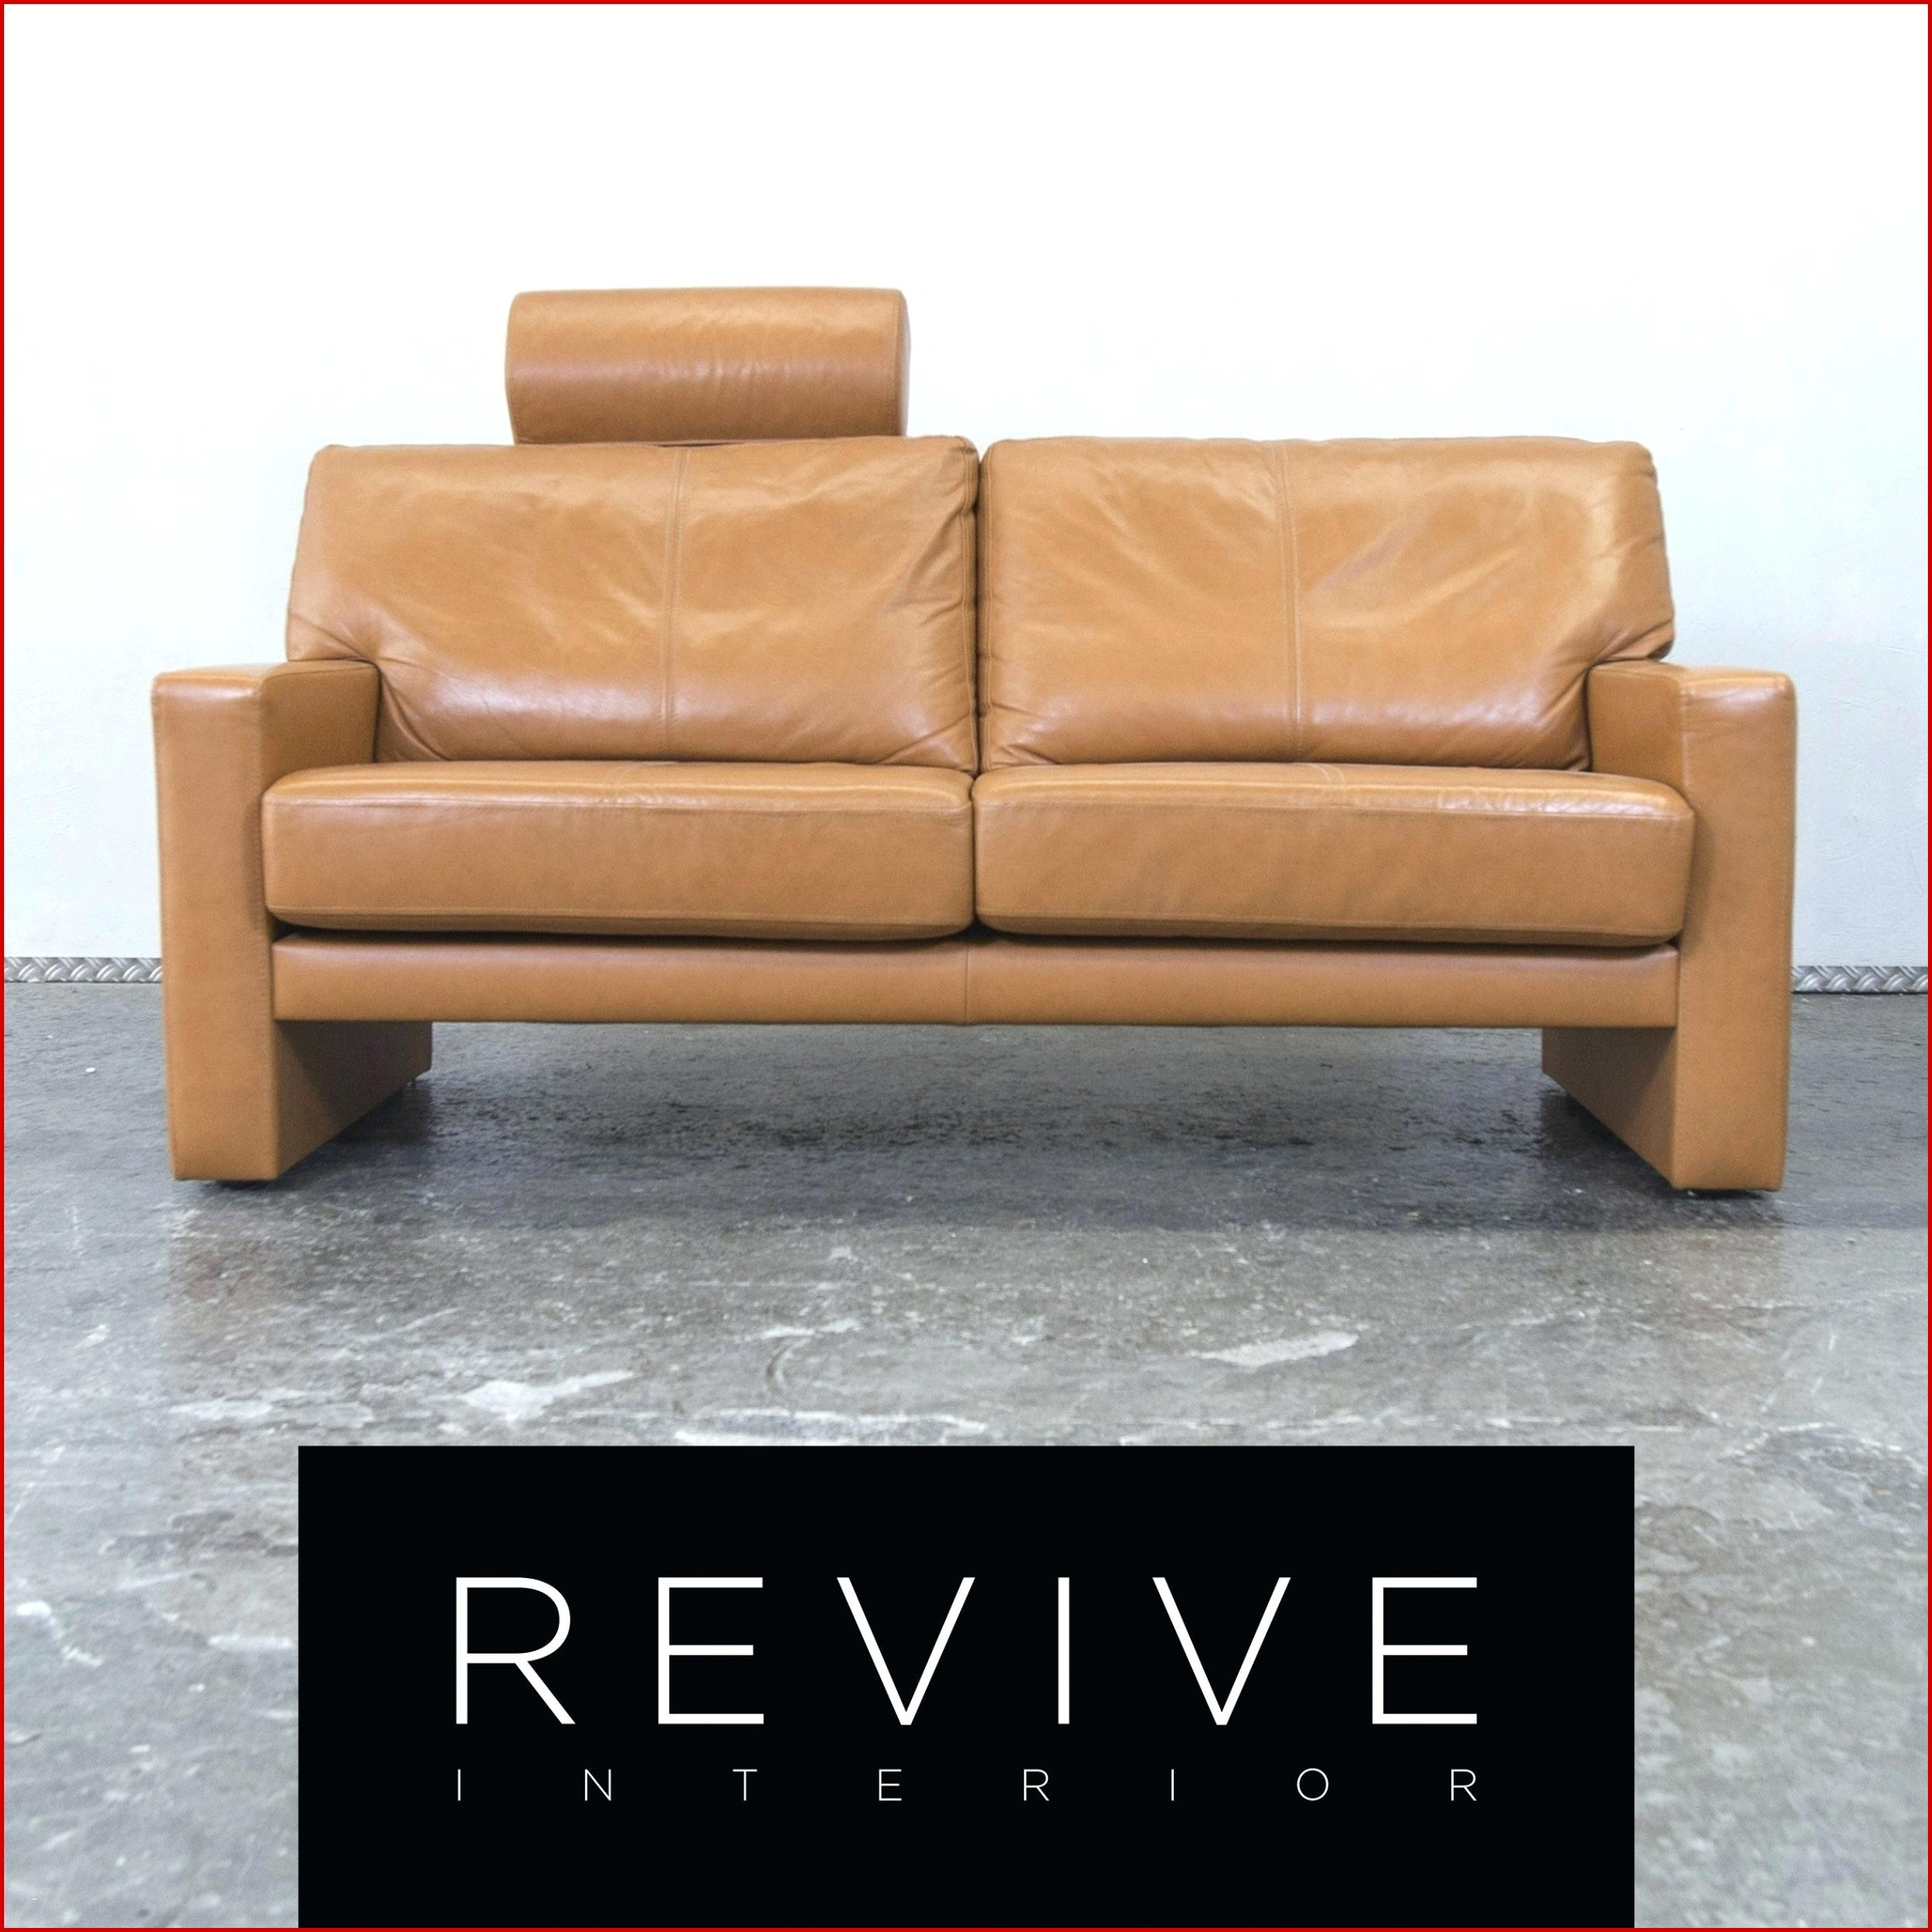 Cognac Leather Sectional Sofa | Baci Living Room pertaining to Tenny Cognac 2 Piece Right Facing Chaise Sectionals With 2 Headrest (Image 6 of 30)